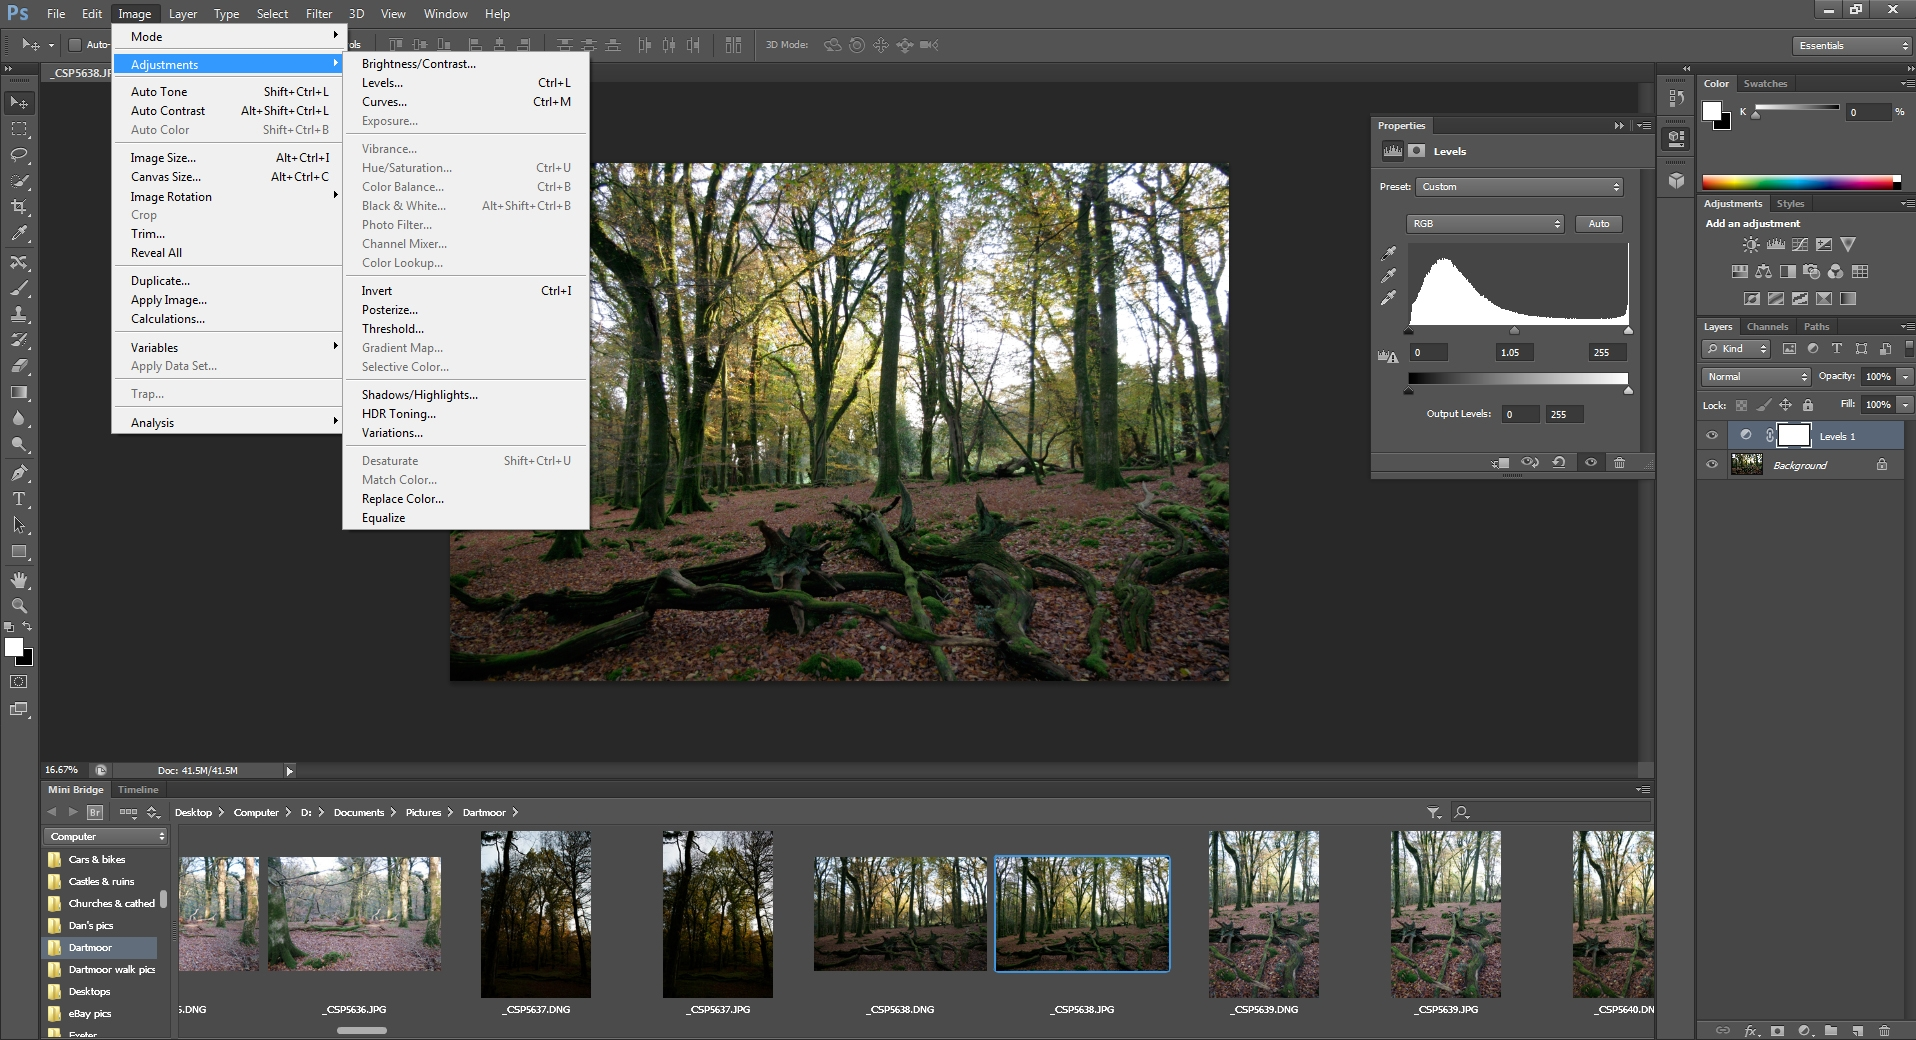 adobe photoshop cs6 extended forest editing work